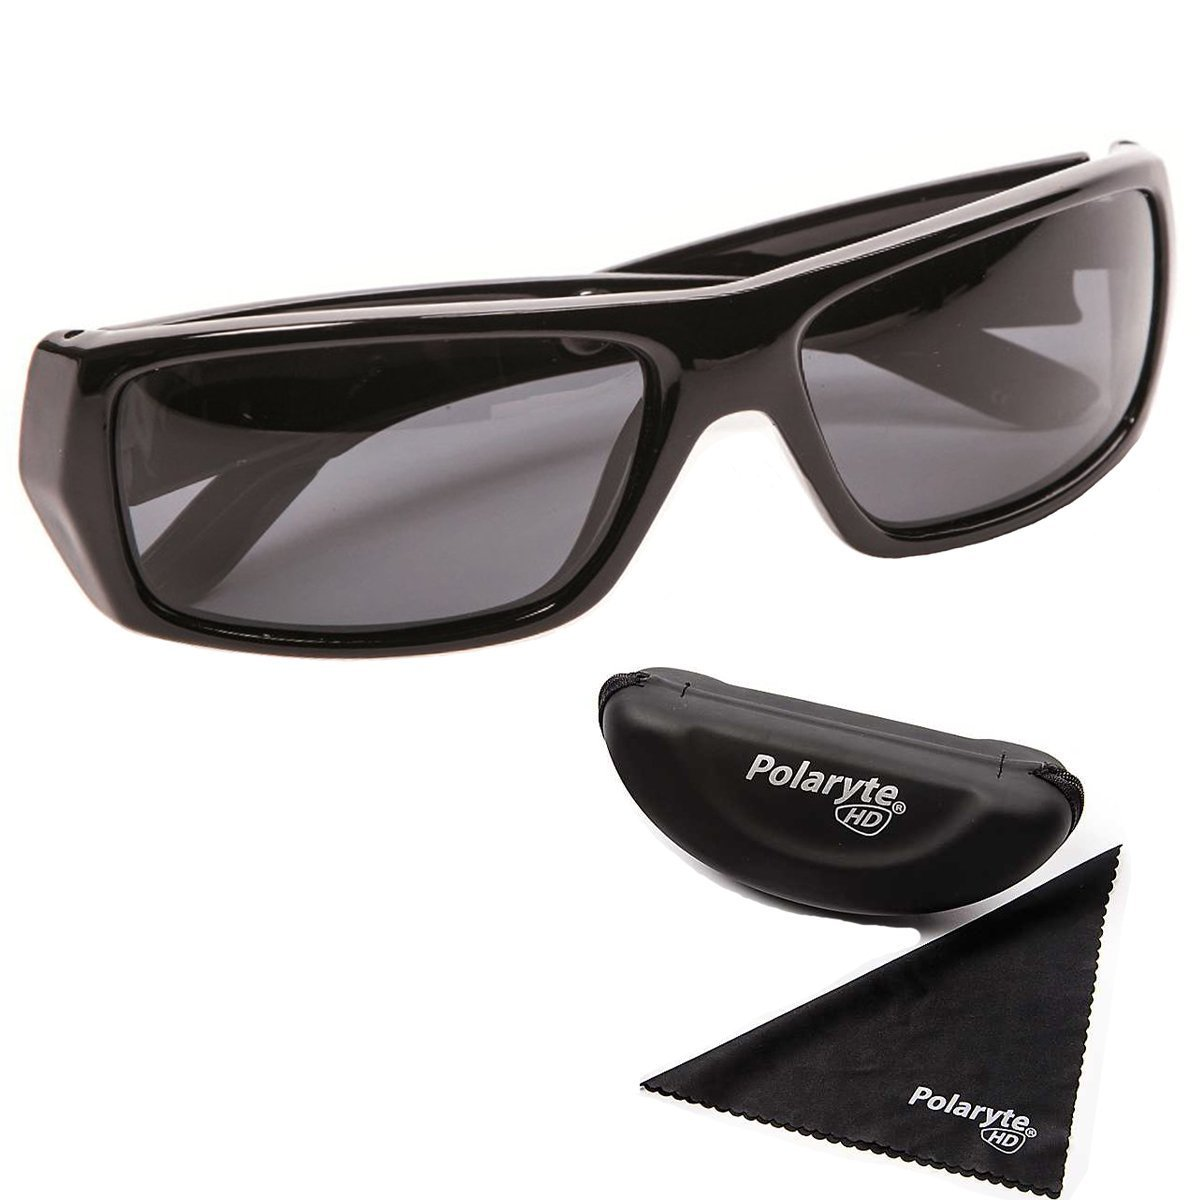 a367417371 Amazon.com  Polaryte HD Vision Polarized Sunglasses For Men Women Driving  Sports Golf UV Protection Black  Sports   Outdoors